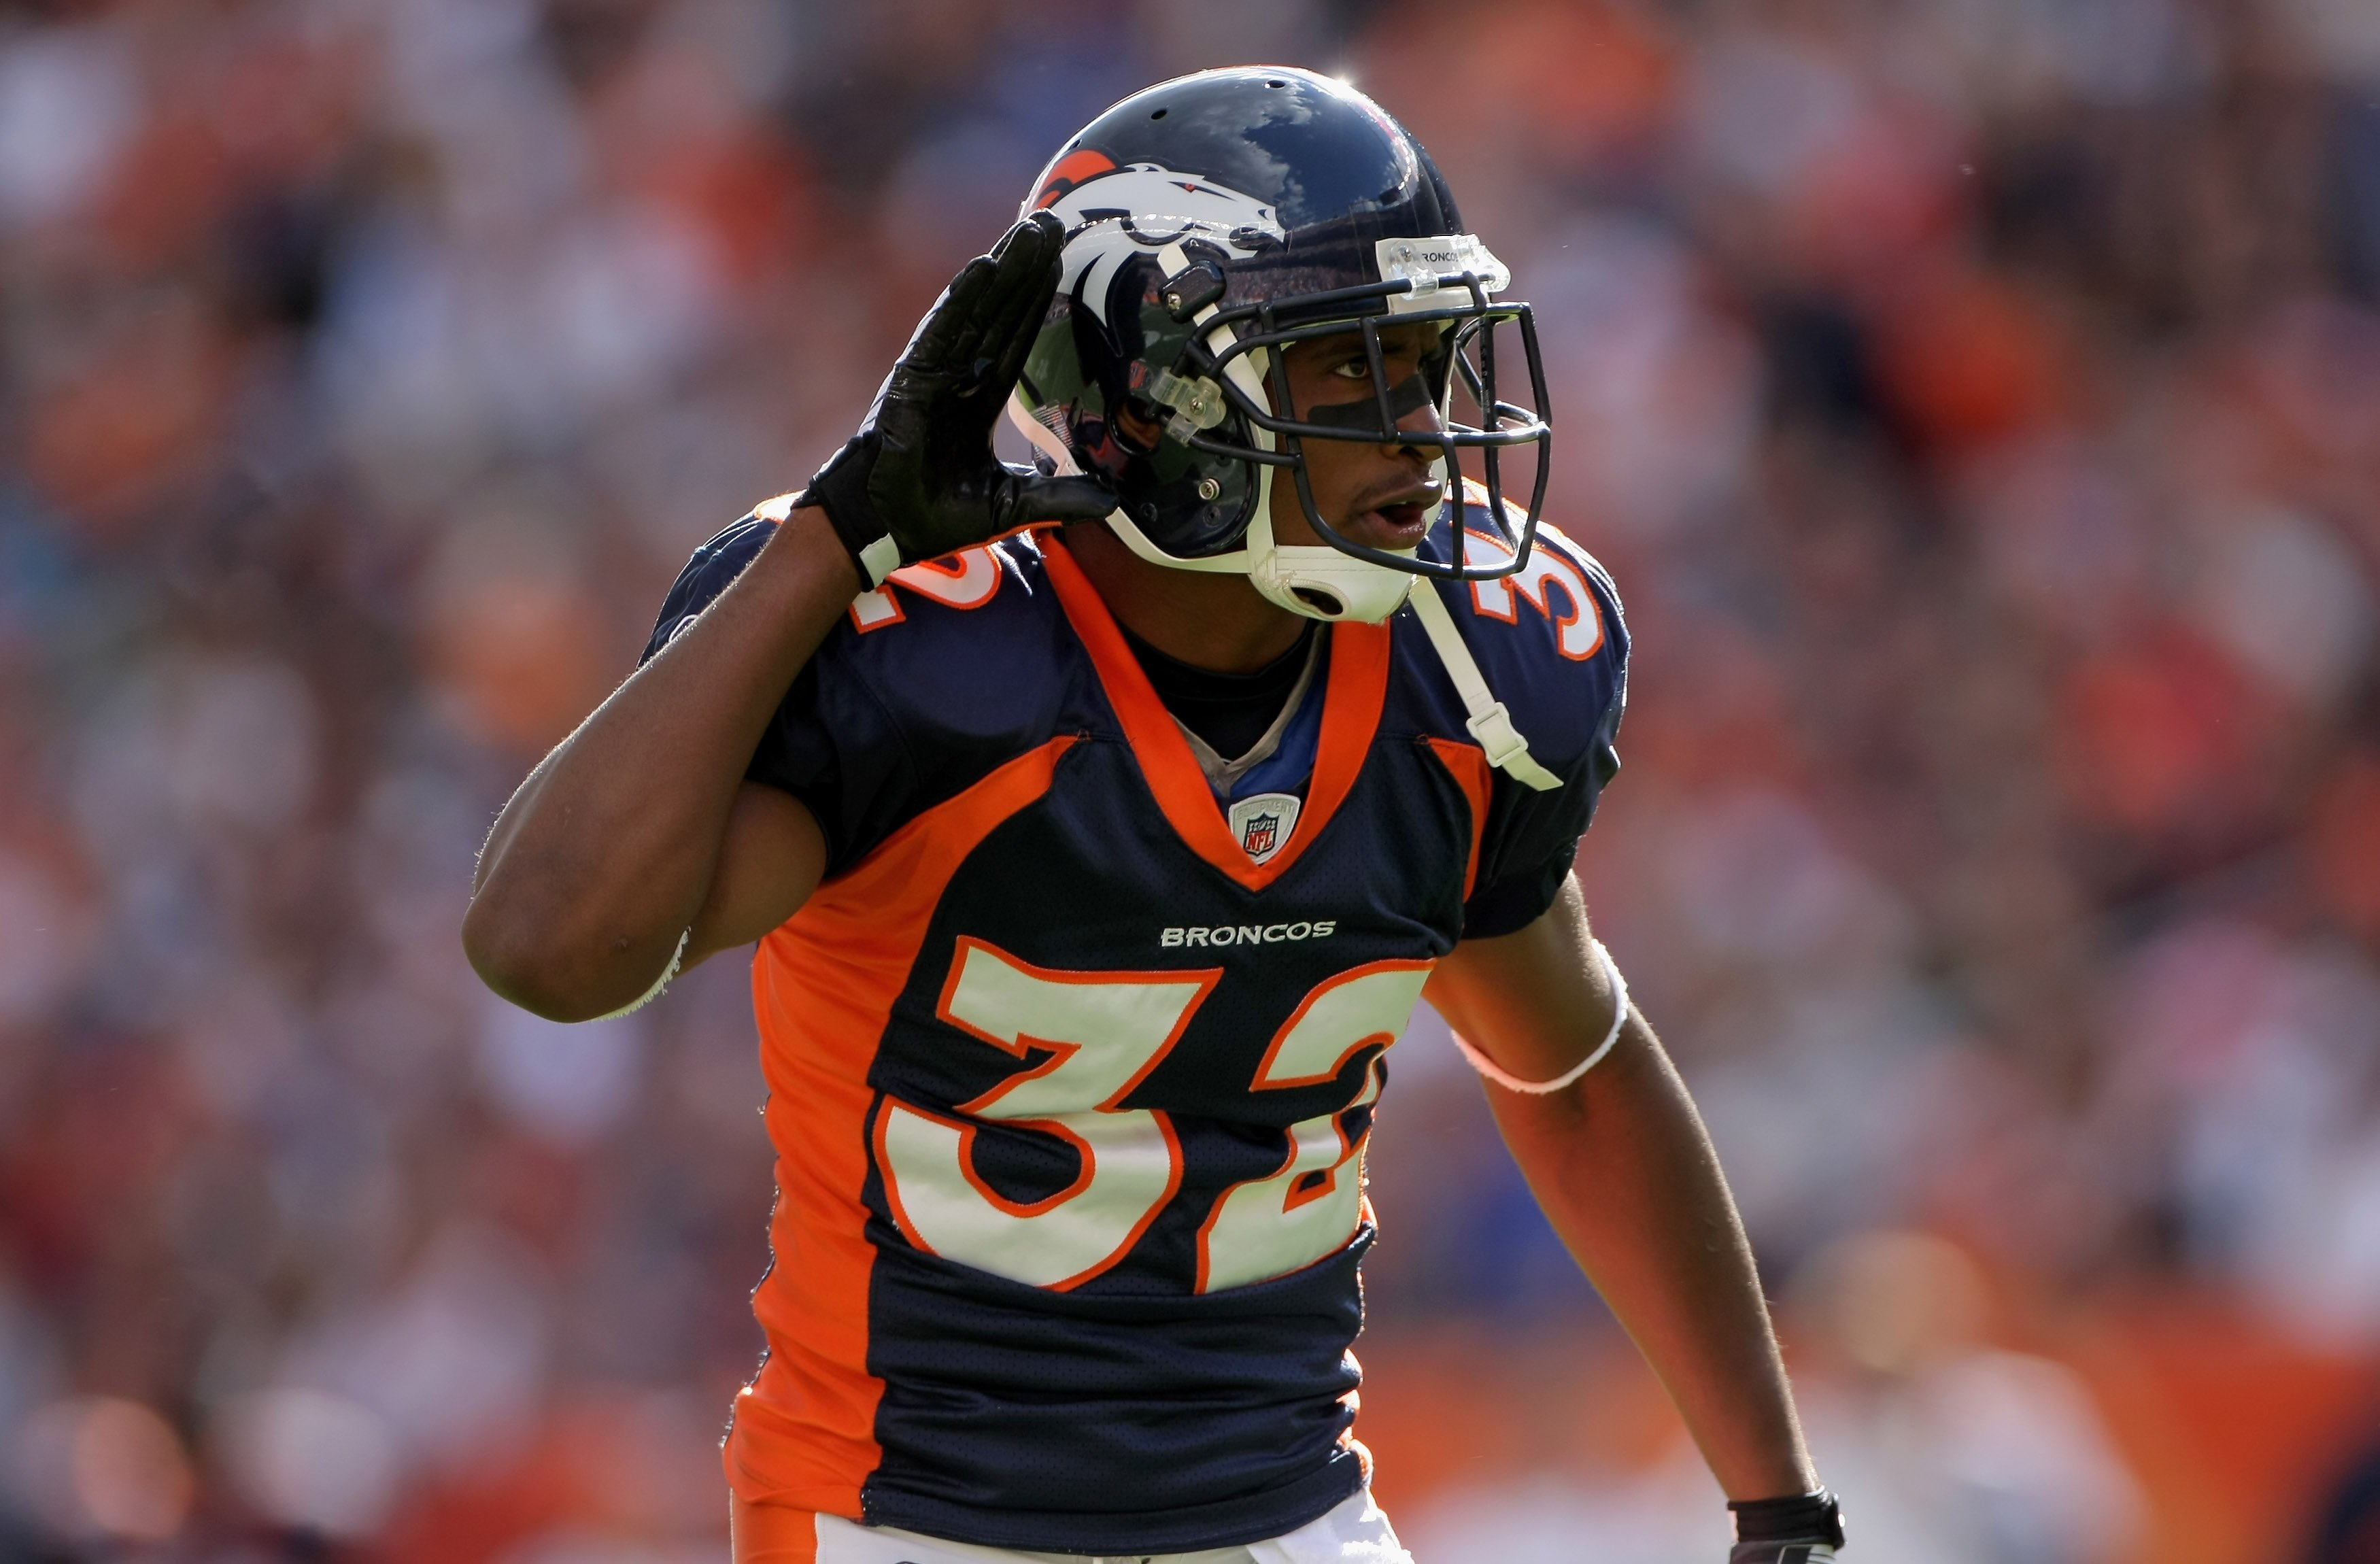 Dre' Bly was a Pro Bowl cornerback for several teams, including the Denver Broncos.